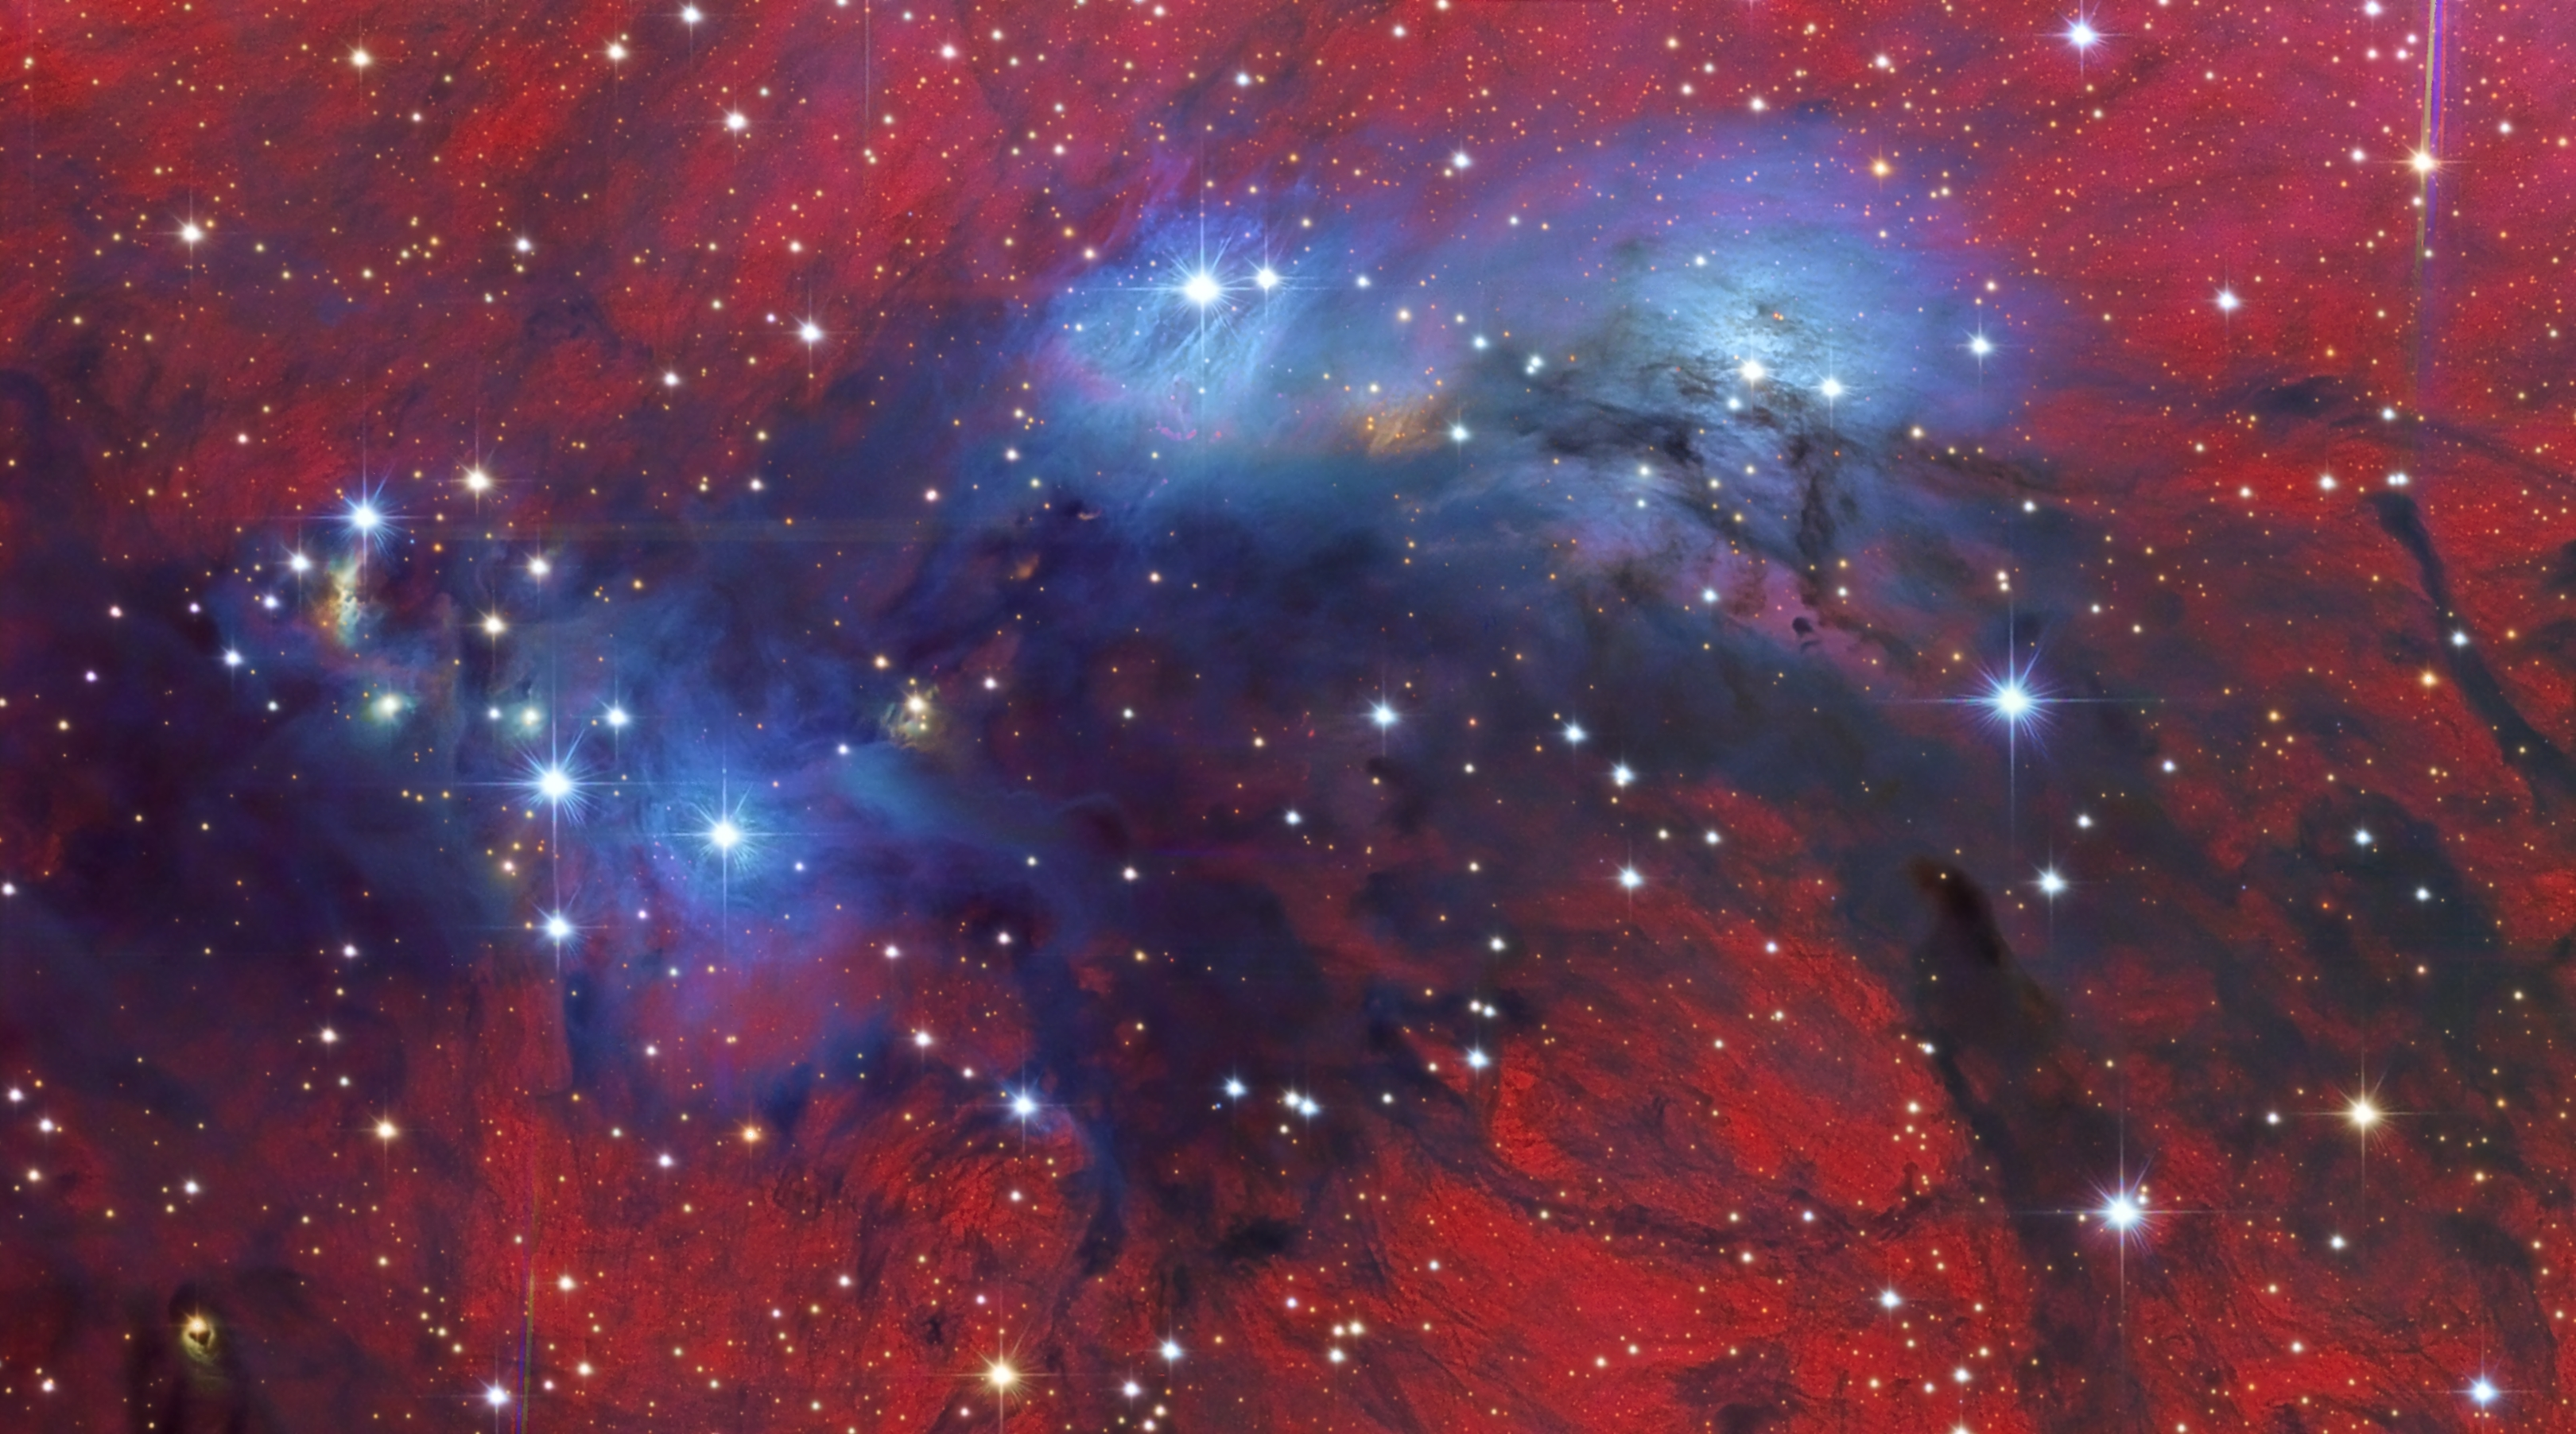 APOD: 2011 March 4 - NGC 6914 Nebulae